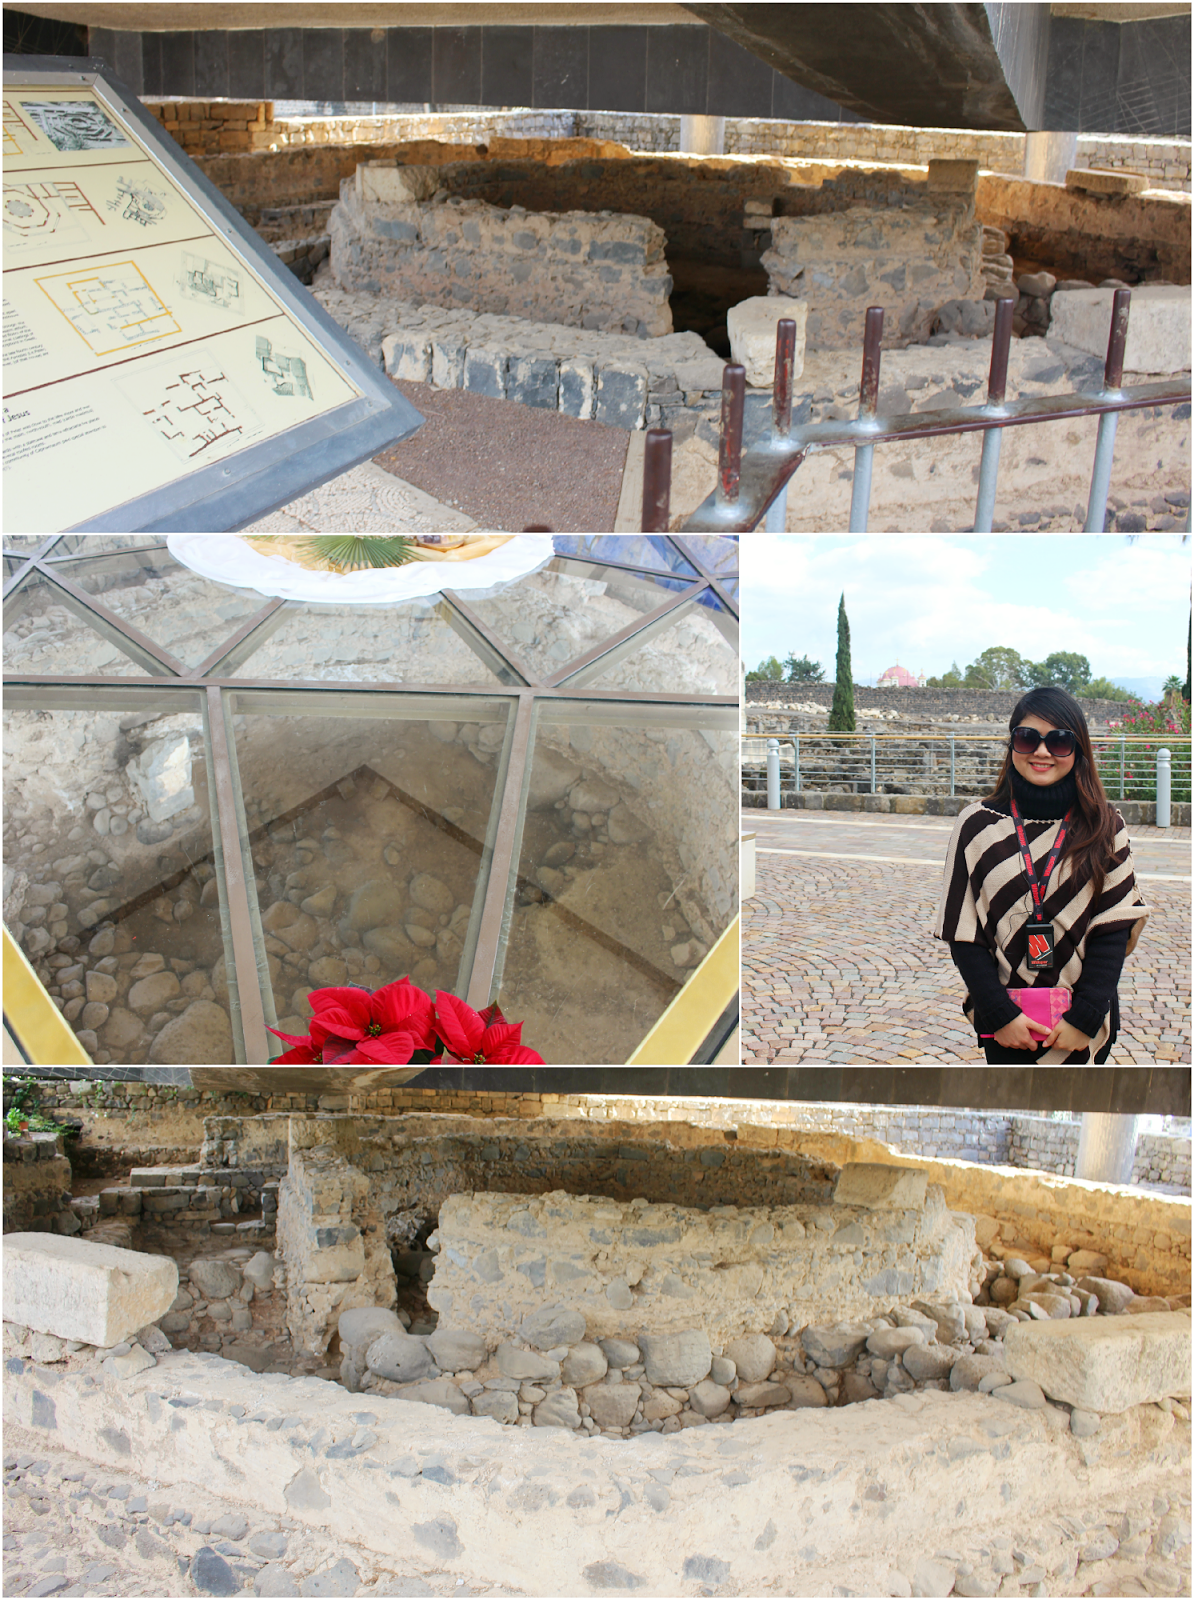 Capernaum: Things To Do in Israel